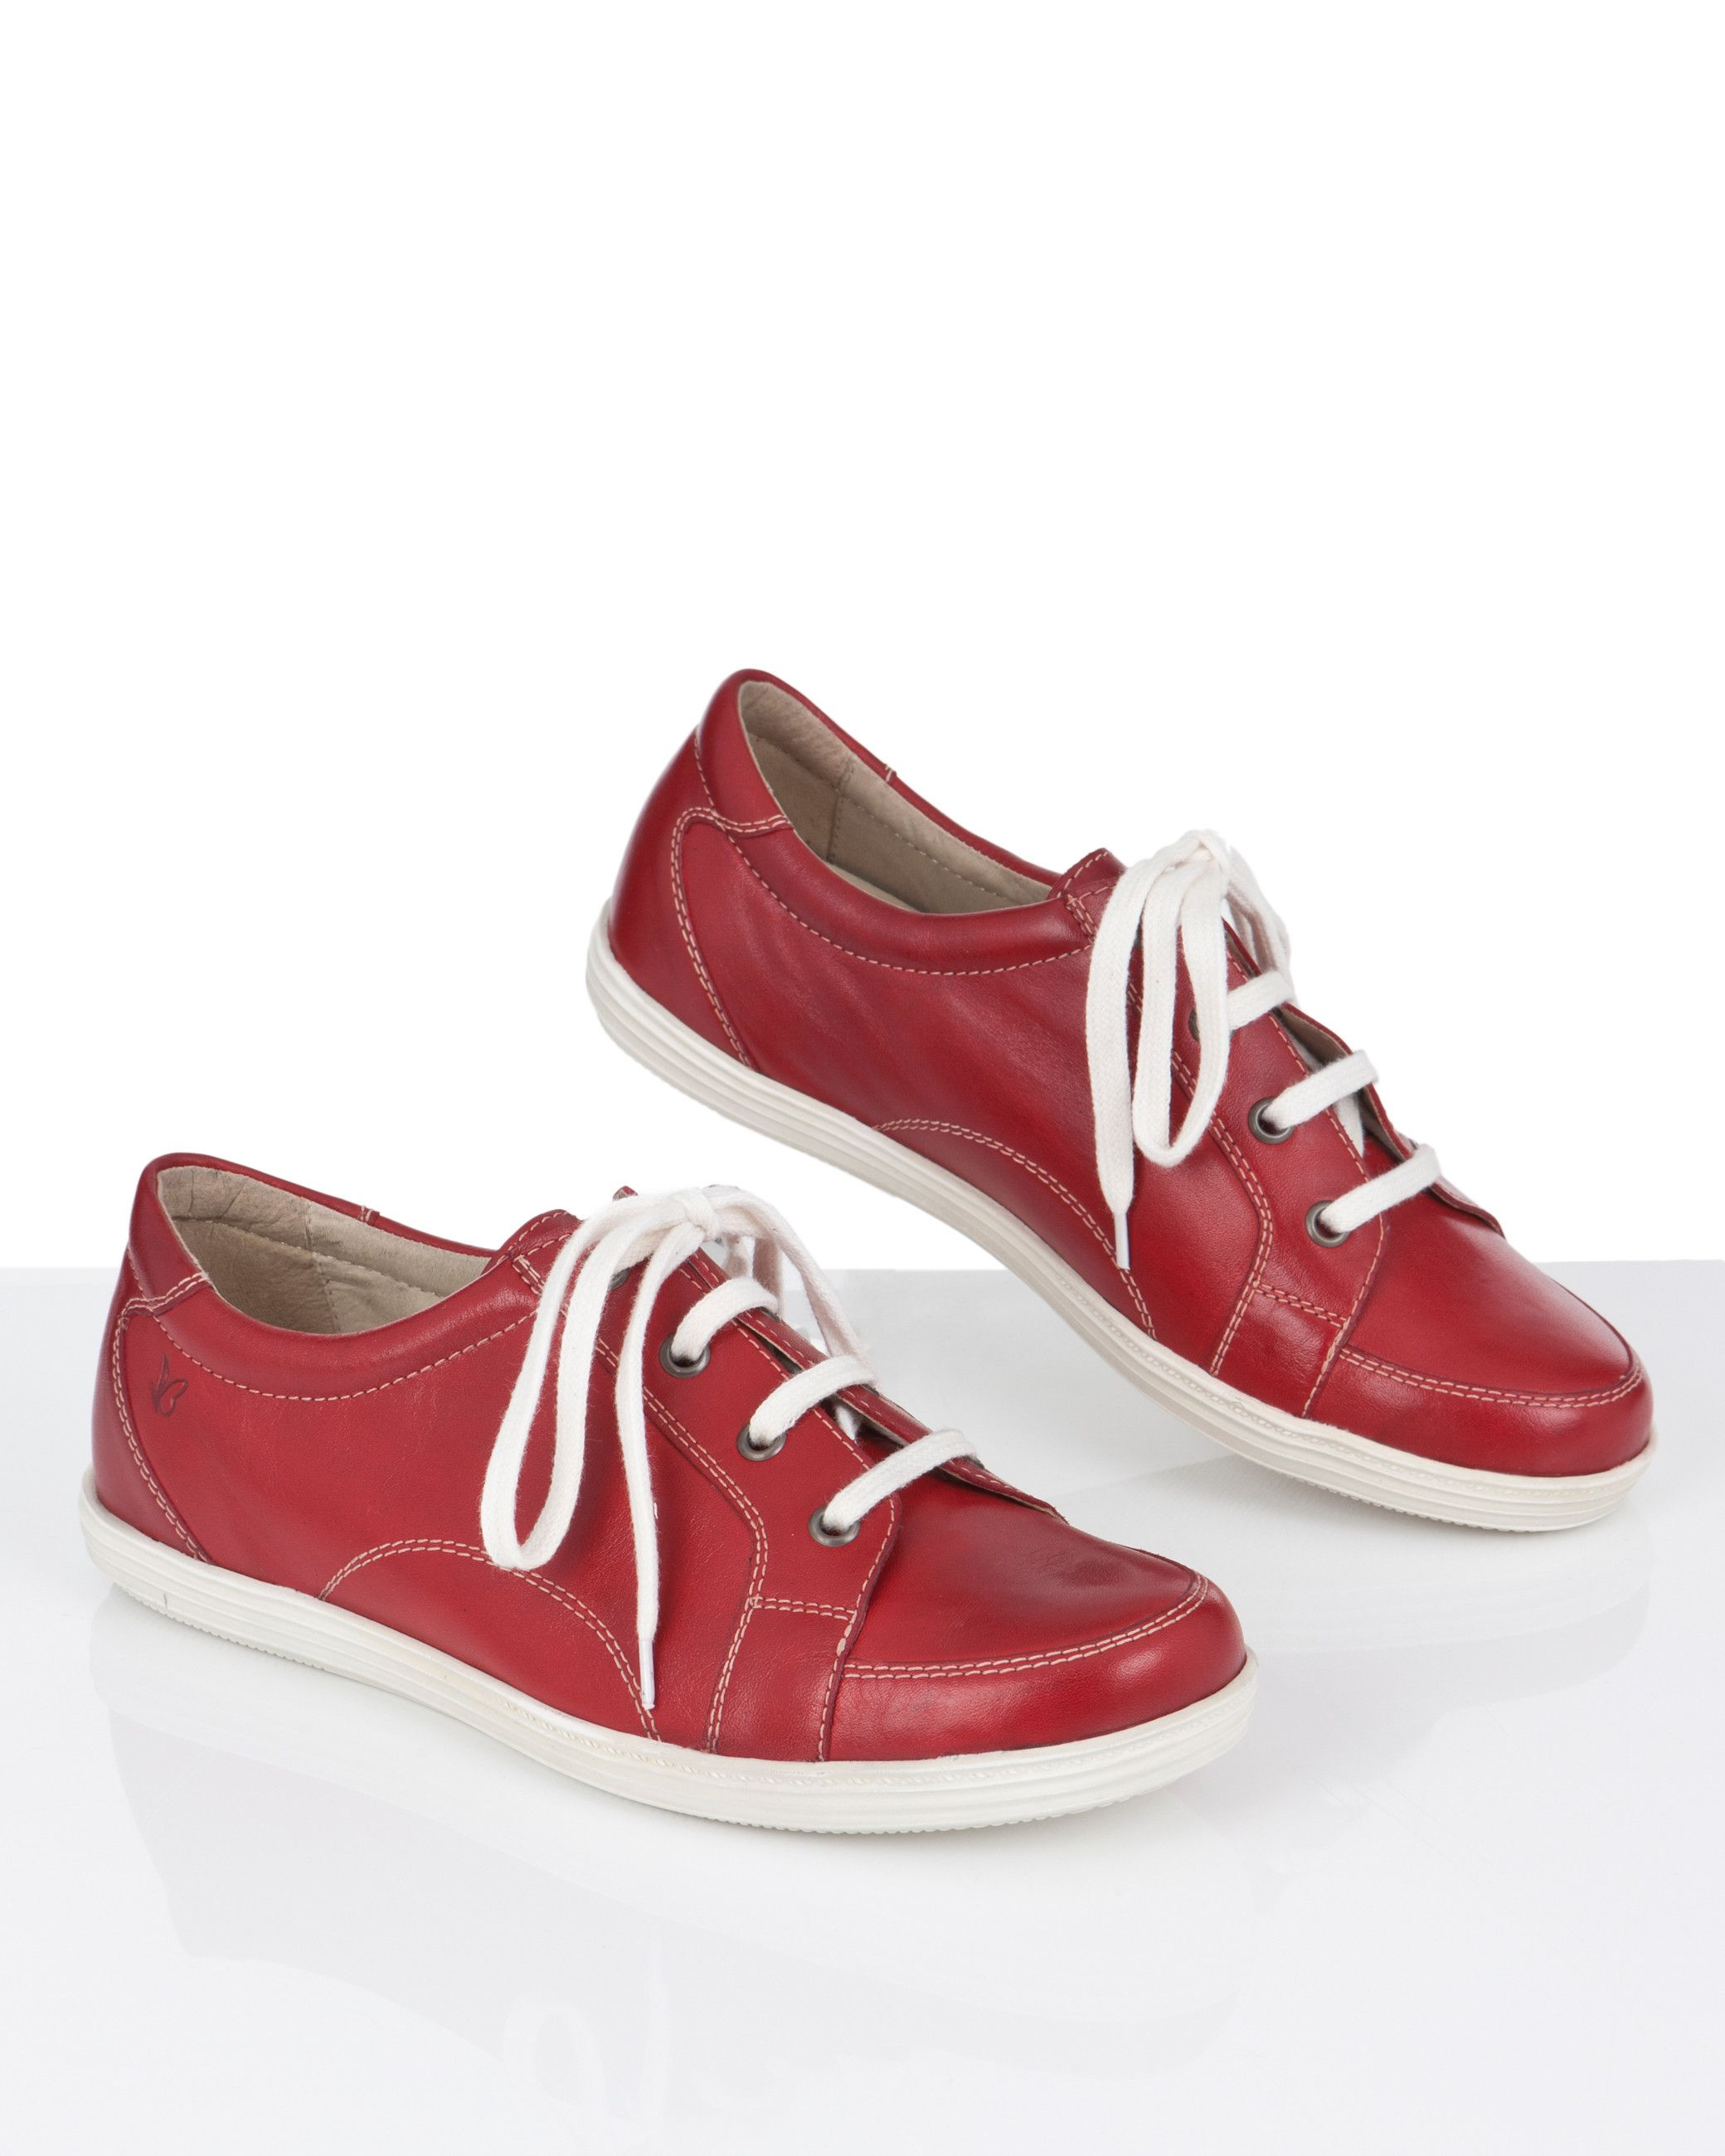 new product a4ad1 d14e4 Caprice | Women's Fashion | rote Sneaker | #HSE24 ...